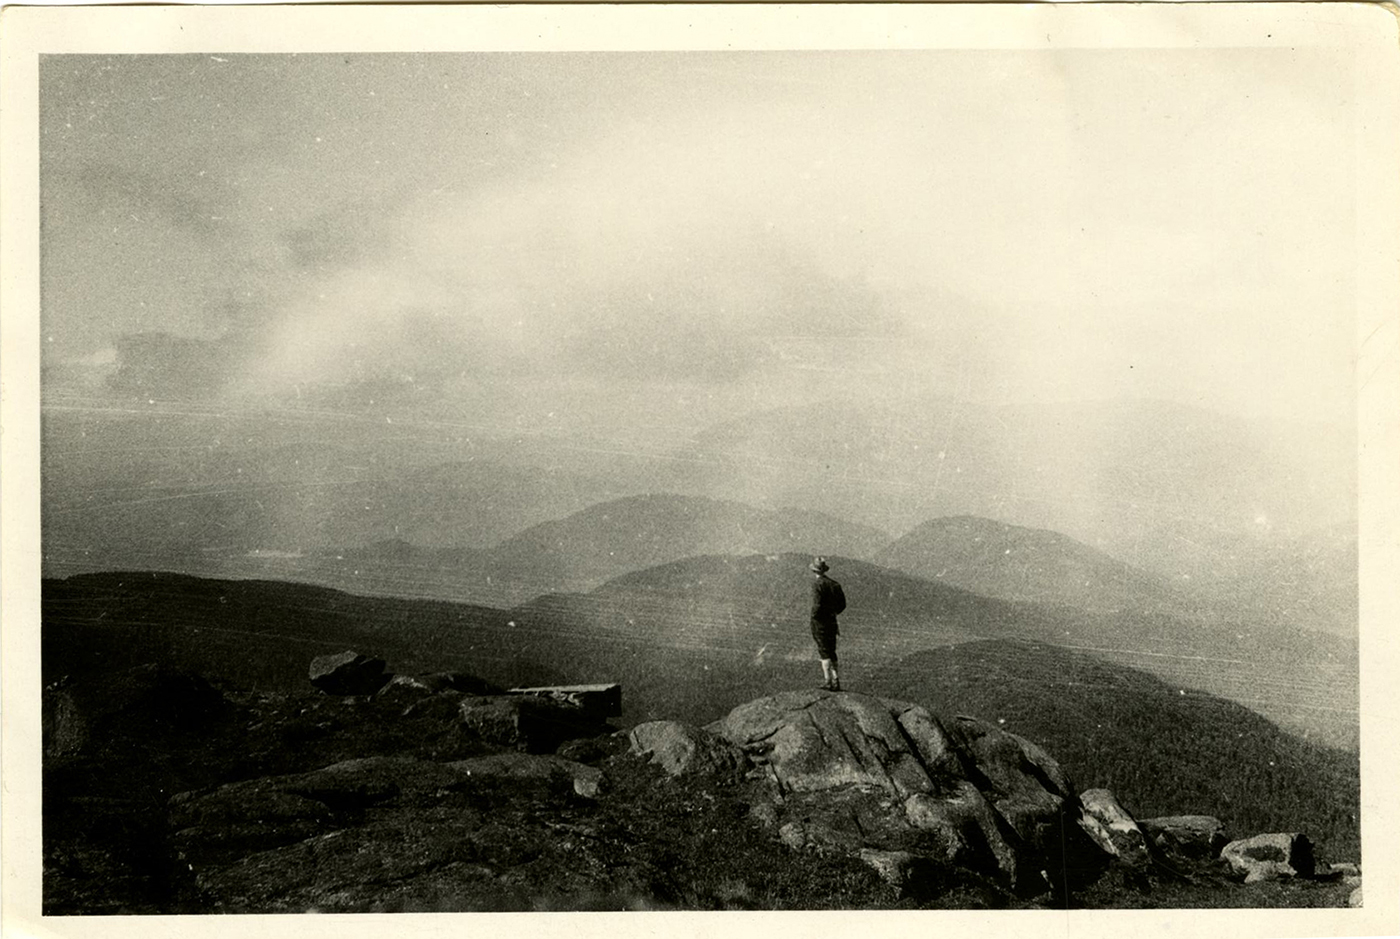 Figure taking in the view of Adirondack peaks from the summit of an unknown mountain, c. 1915.